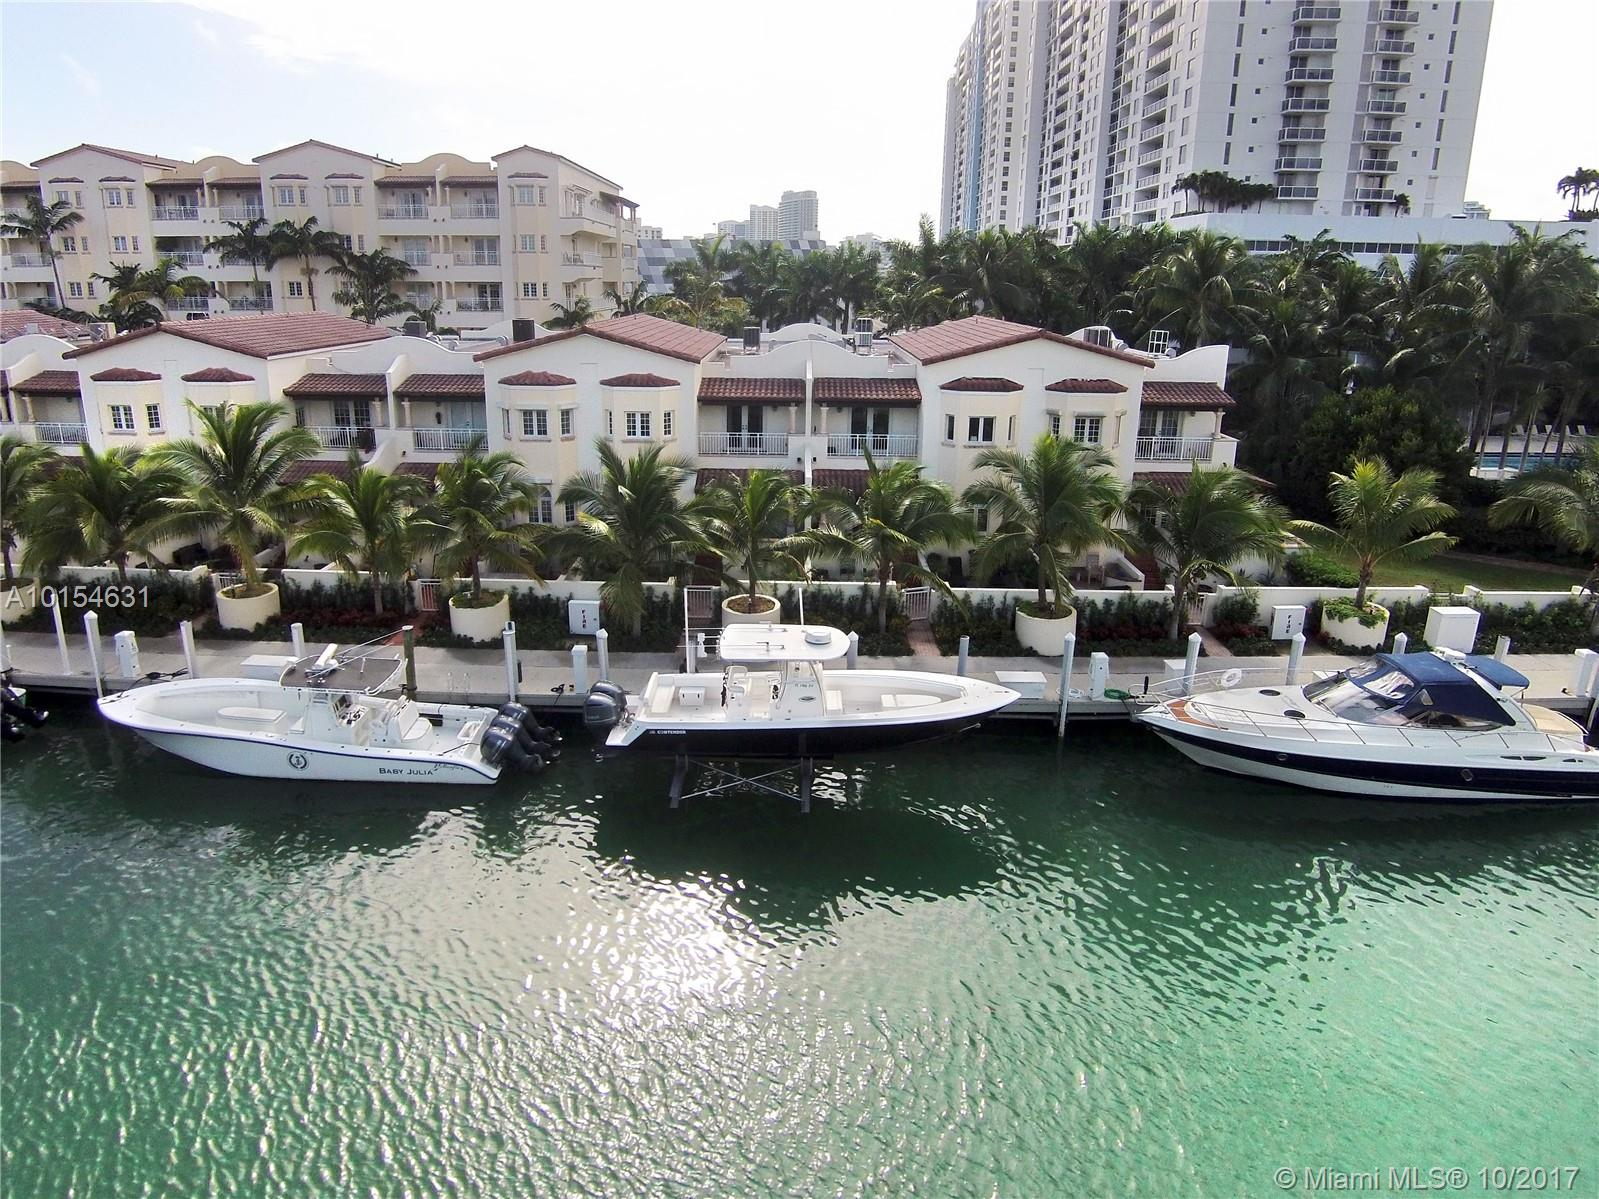 1415 Sunset harbour drive-TH 102 miami-beach--fl-33139-a10154631-Pic01